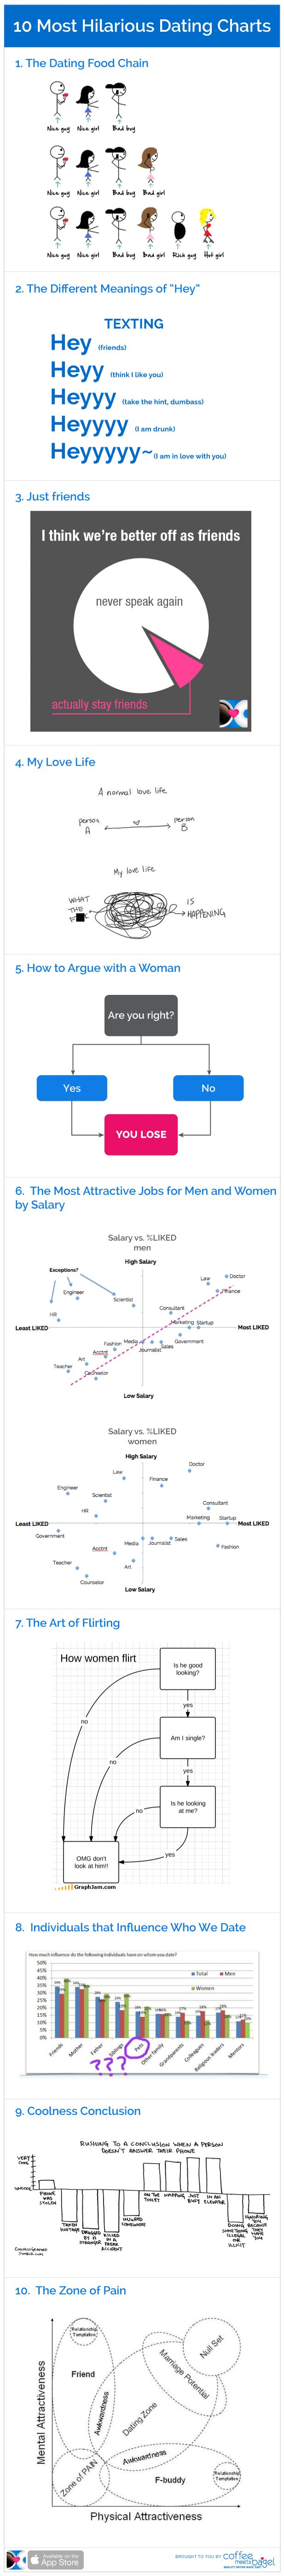 These 10 Dating Charts will Make You Want to be Single Forever